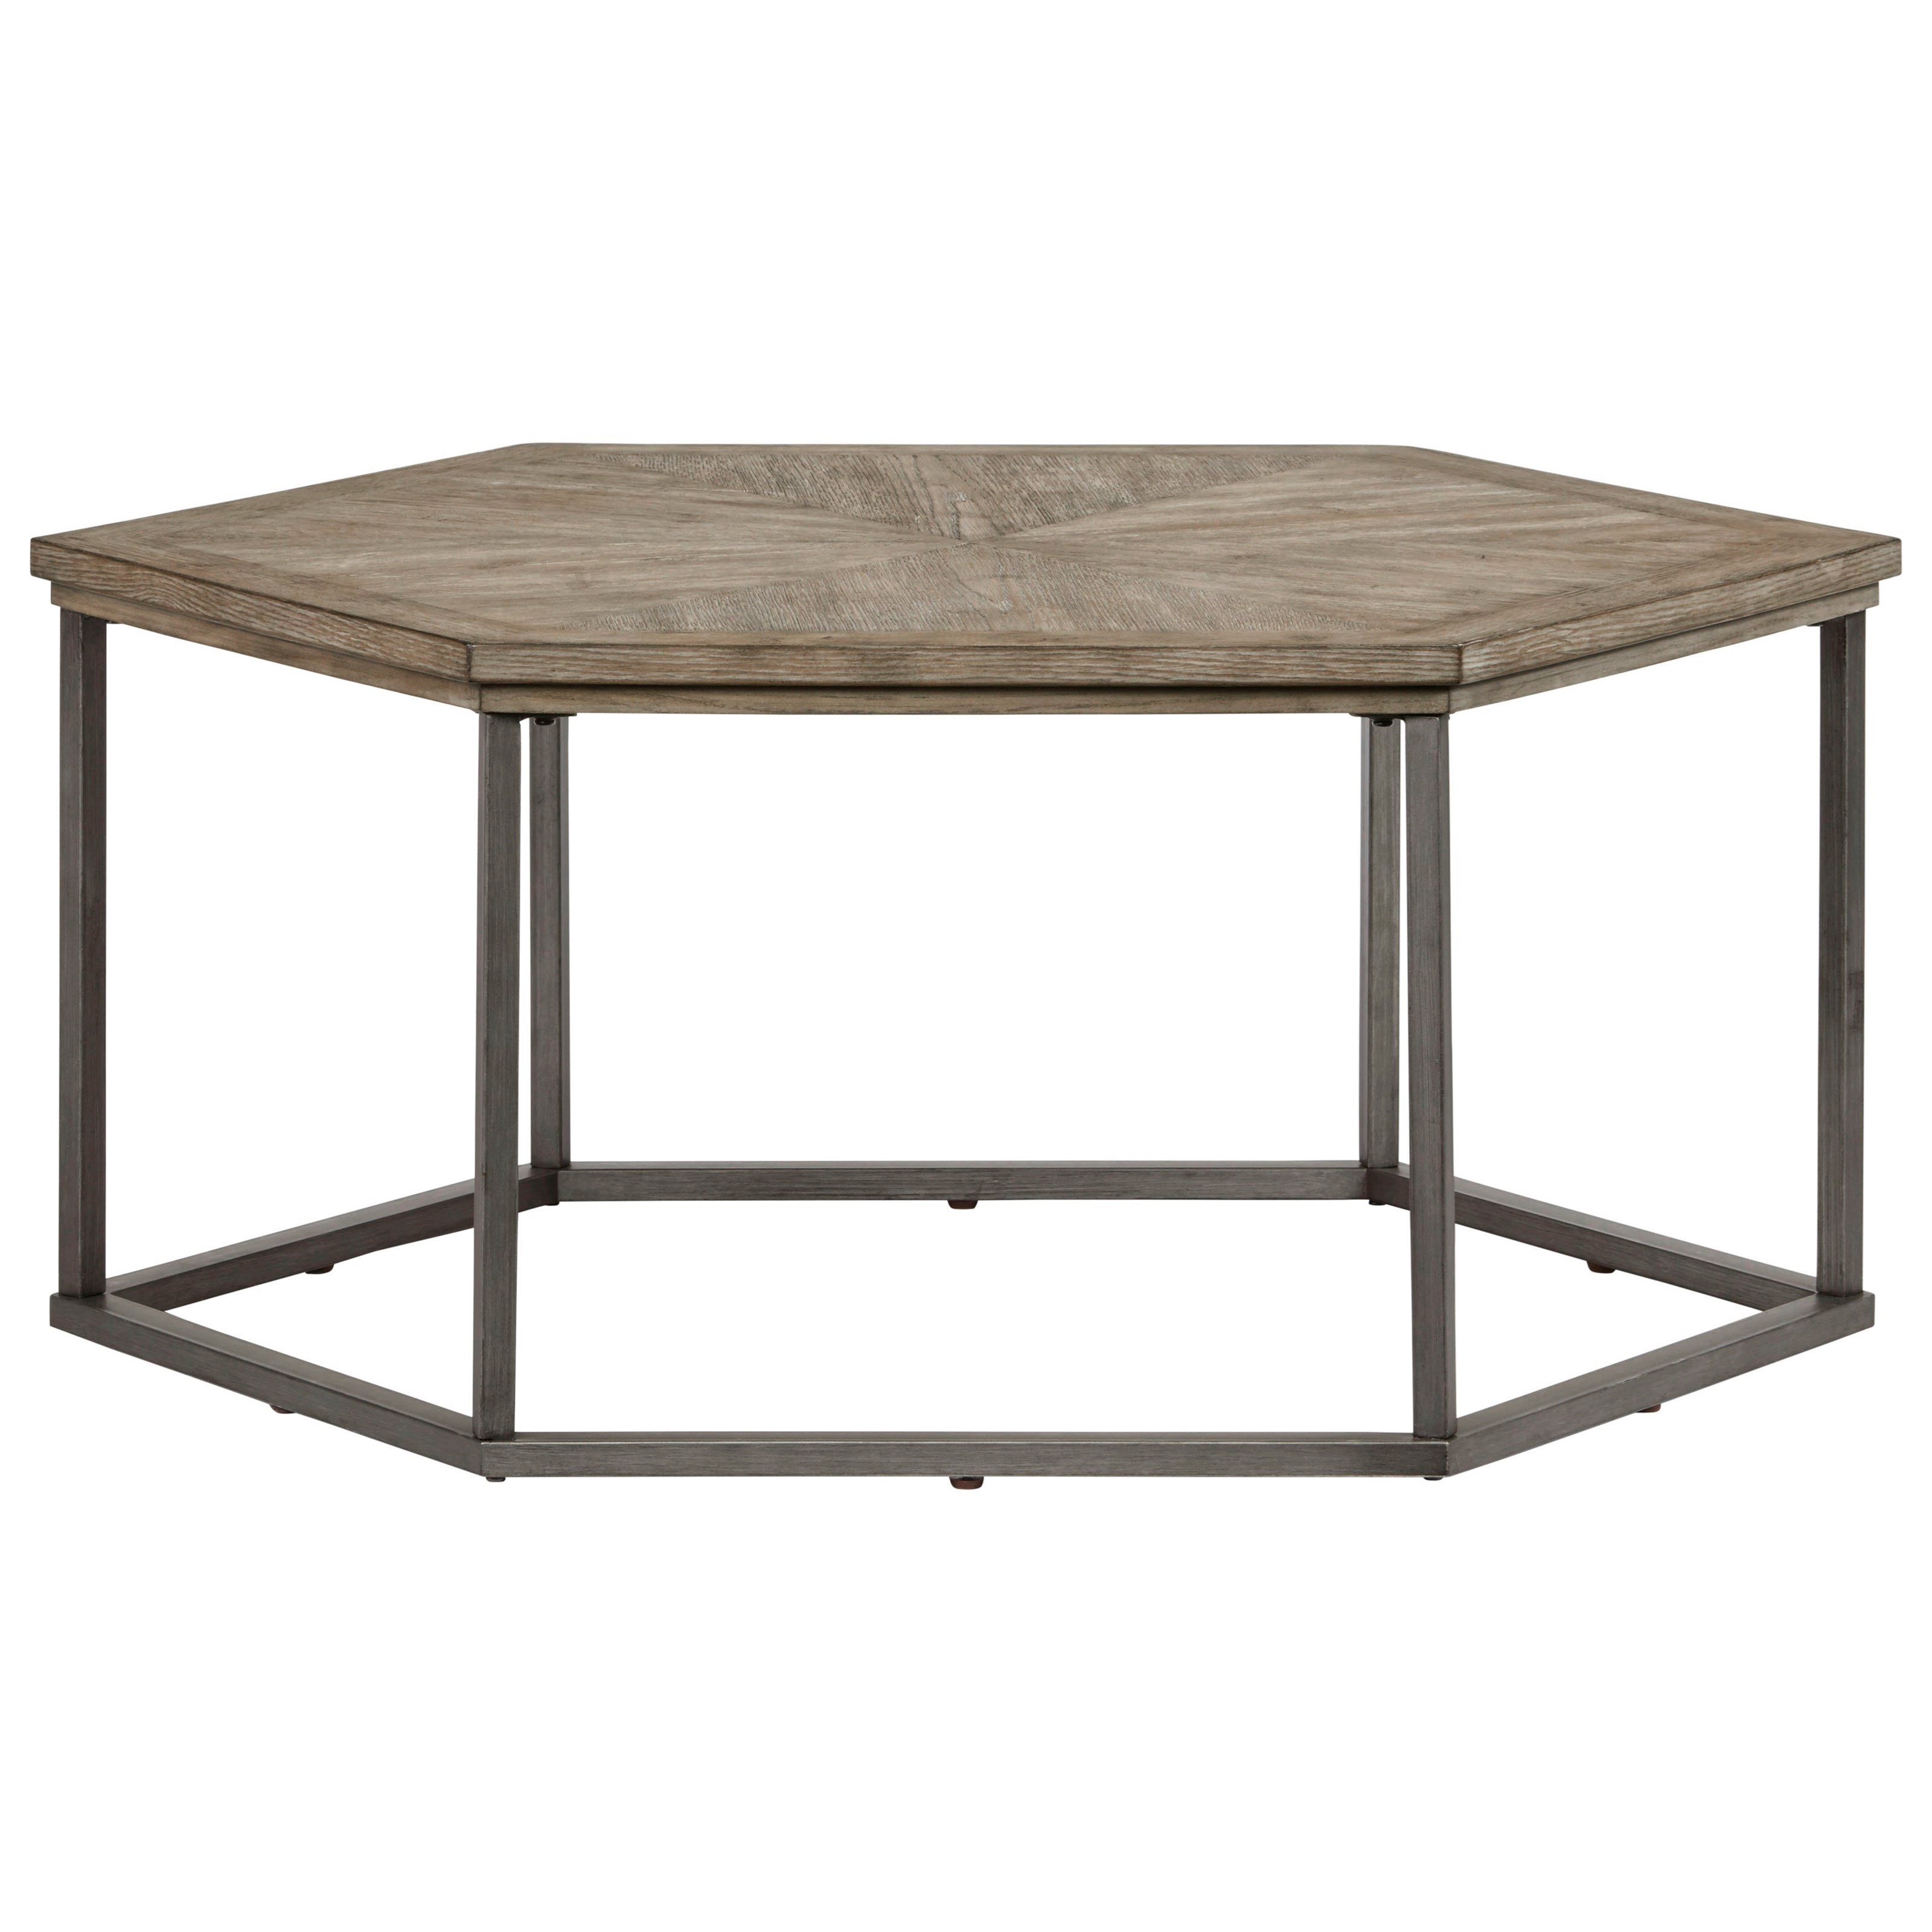 Adison Cove Hexagon Cocktail Table by Progressive Furniture at Catalog Outlet